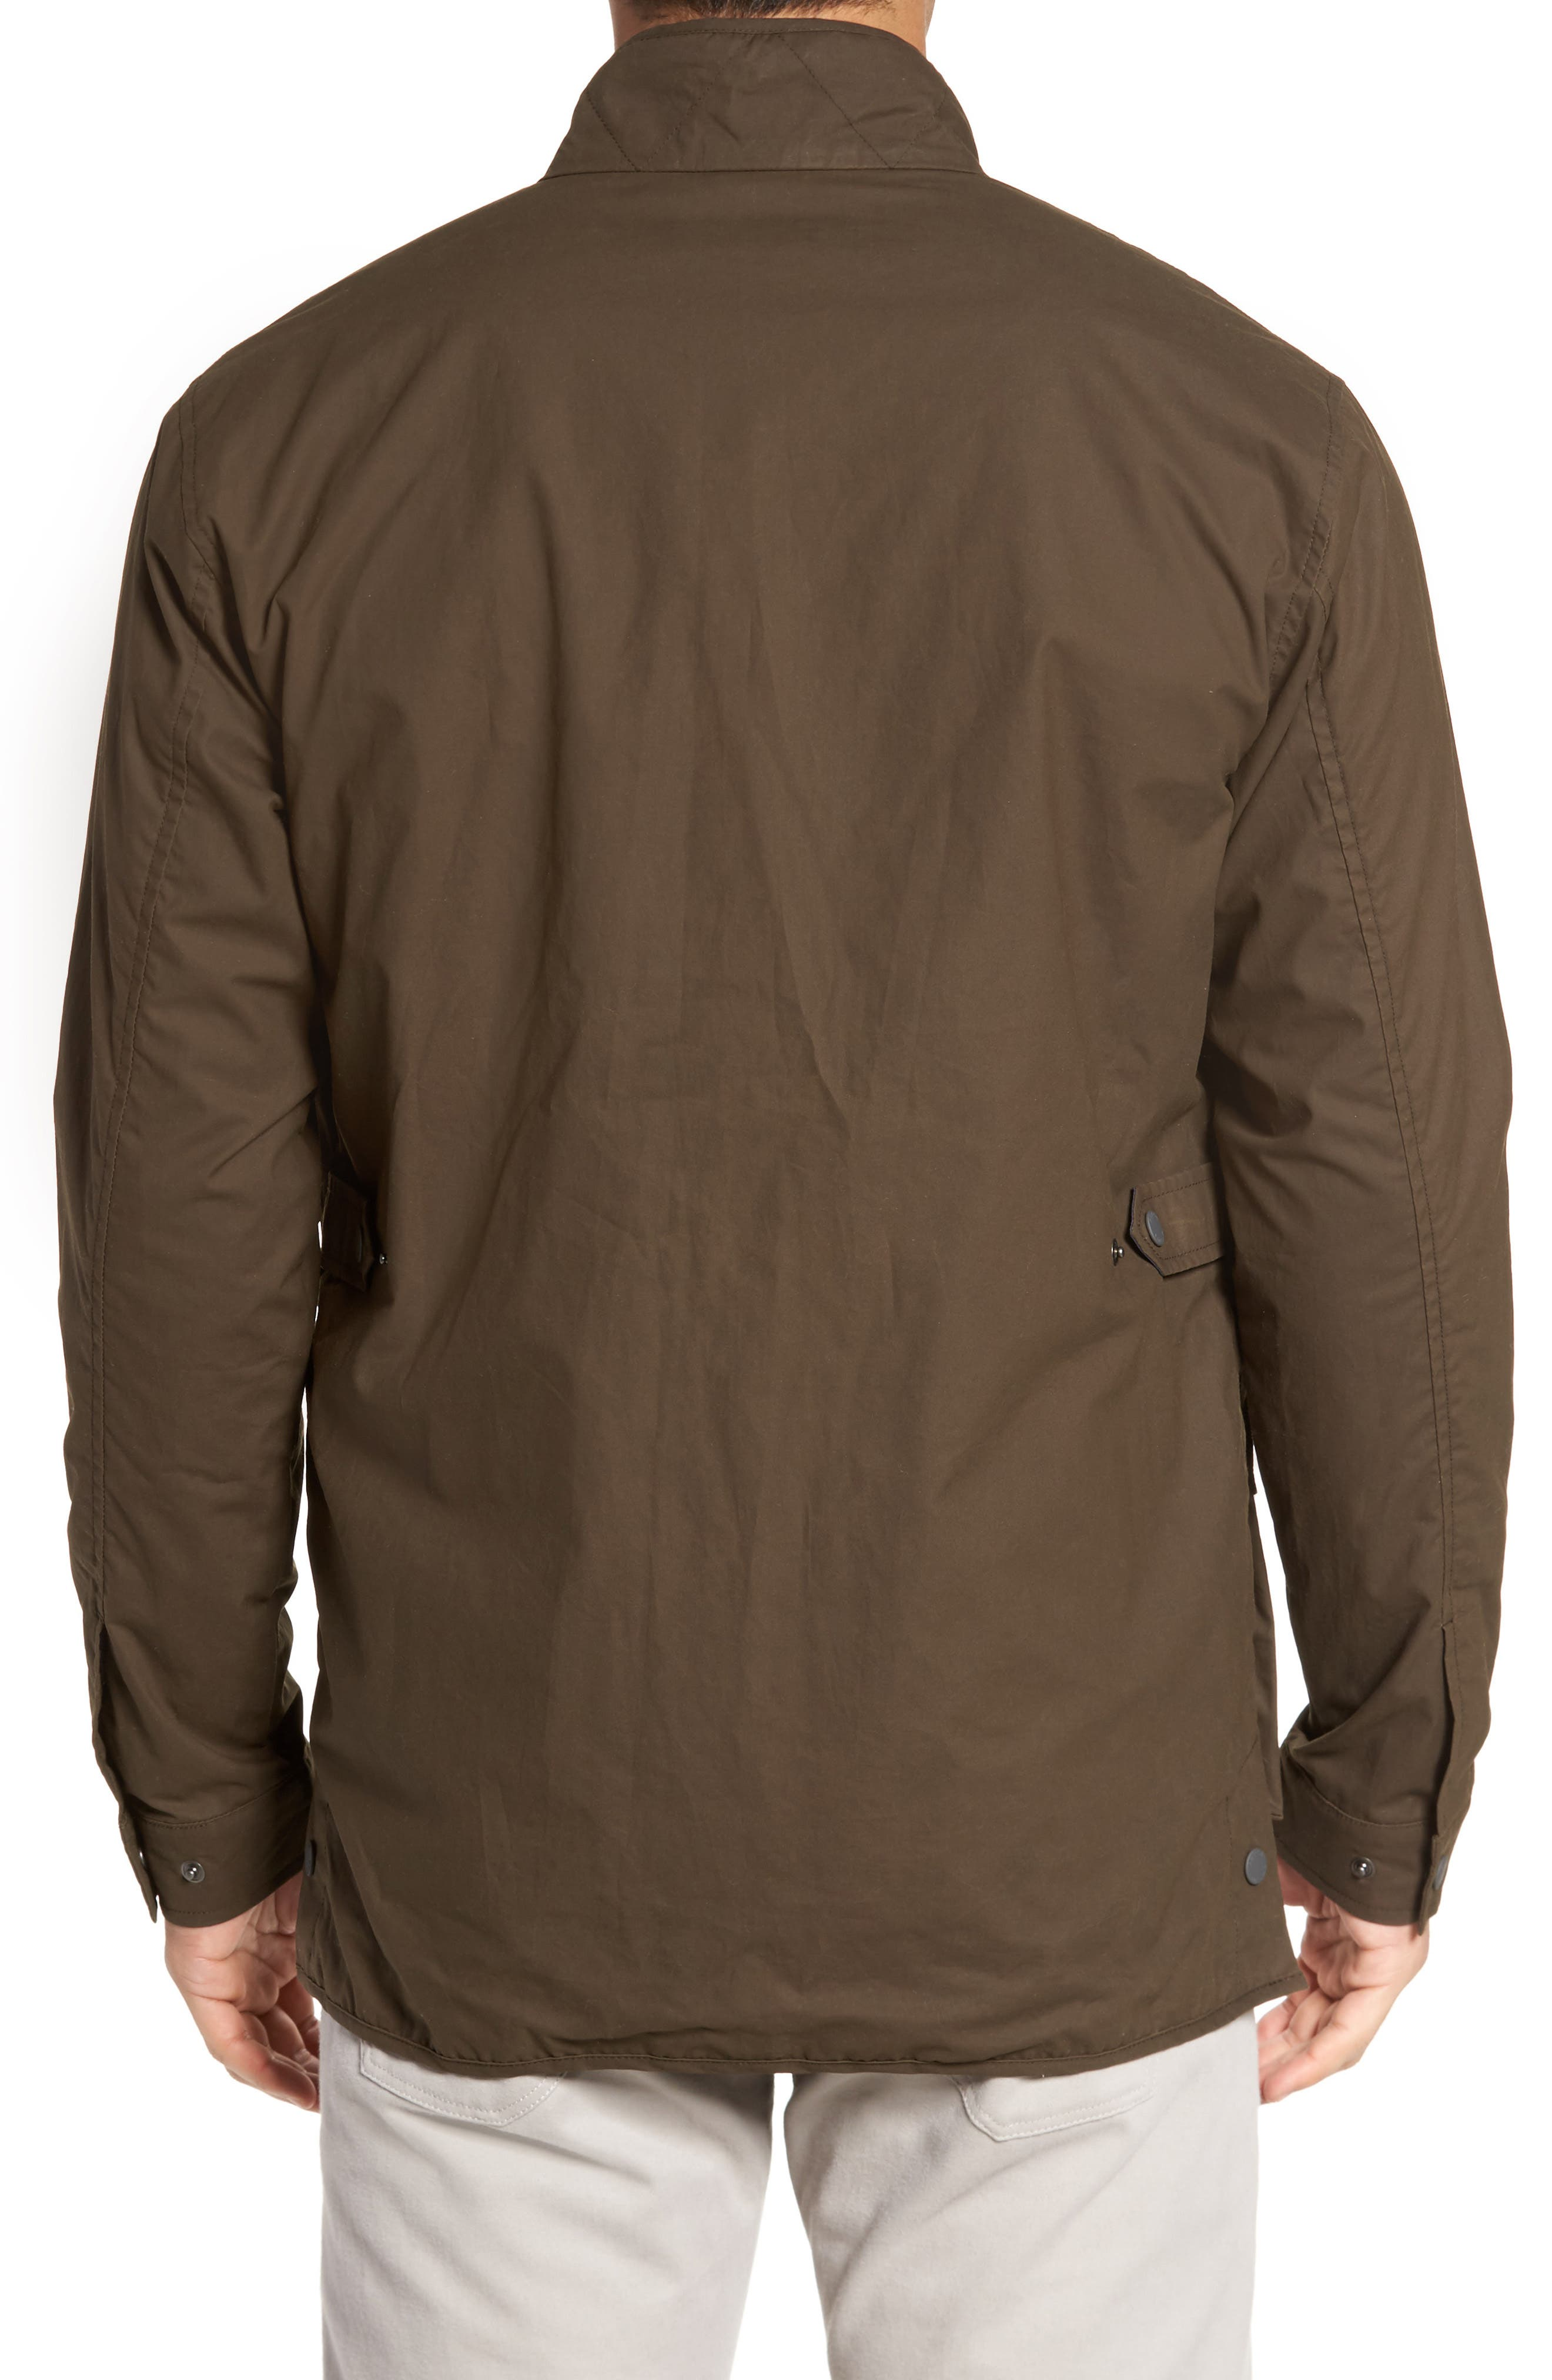 Harrison Wine Country Field Jacket,                             Alternate thumbnail 2, color,                             391